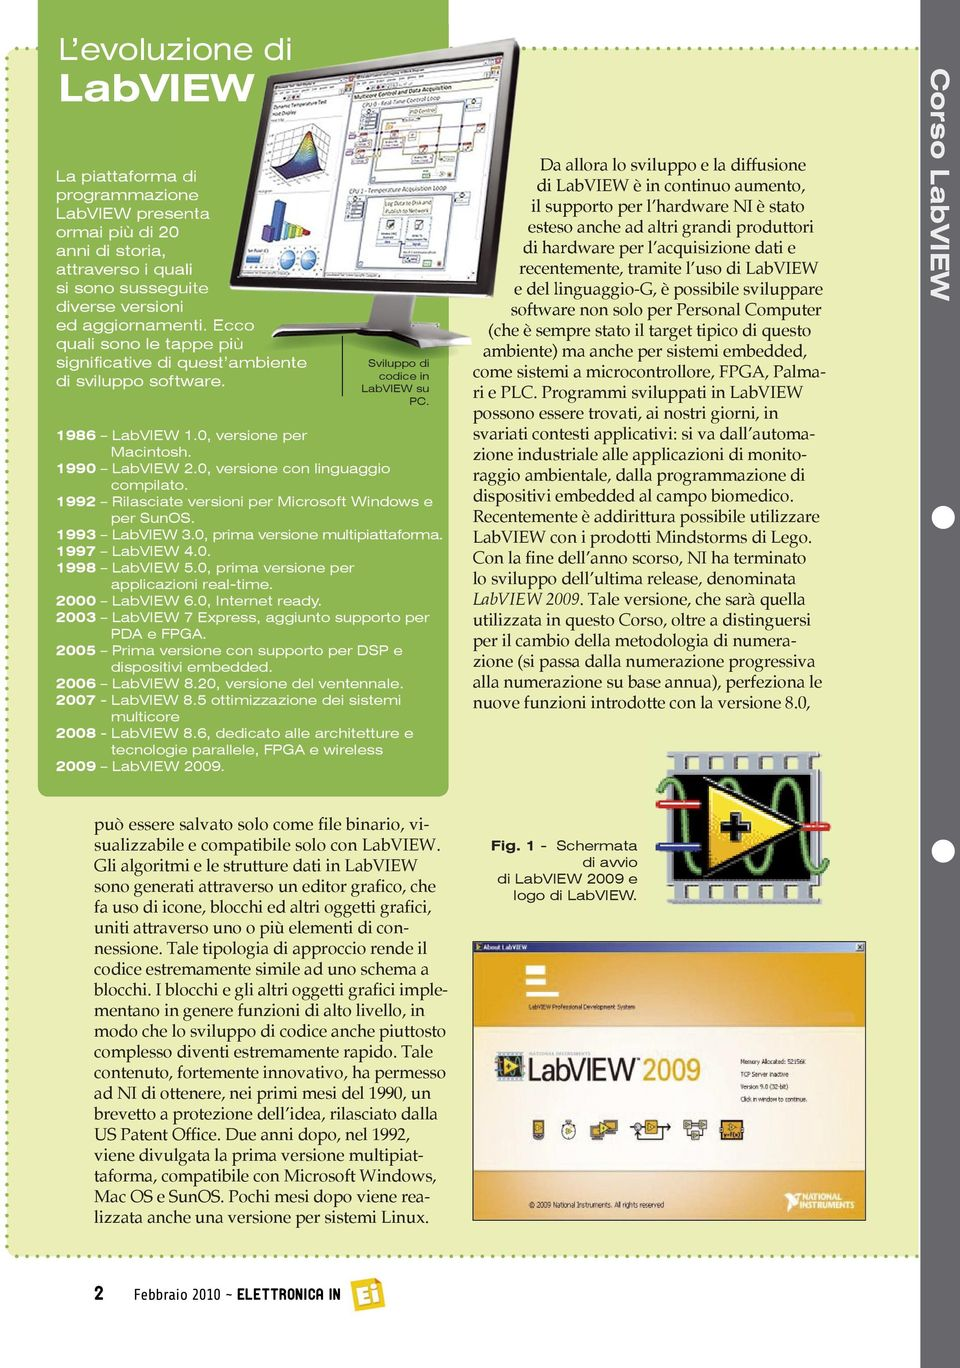 0, versione con linguaggio compilato. 1992 Rilasciate versioni per Microsoft Windows e per SunOS. 1993 LabVIEW 3.0, prima versione multipiattaforma. 1997 LabVIEW 4.0. 1998 LabVIEW 5.